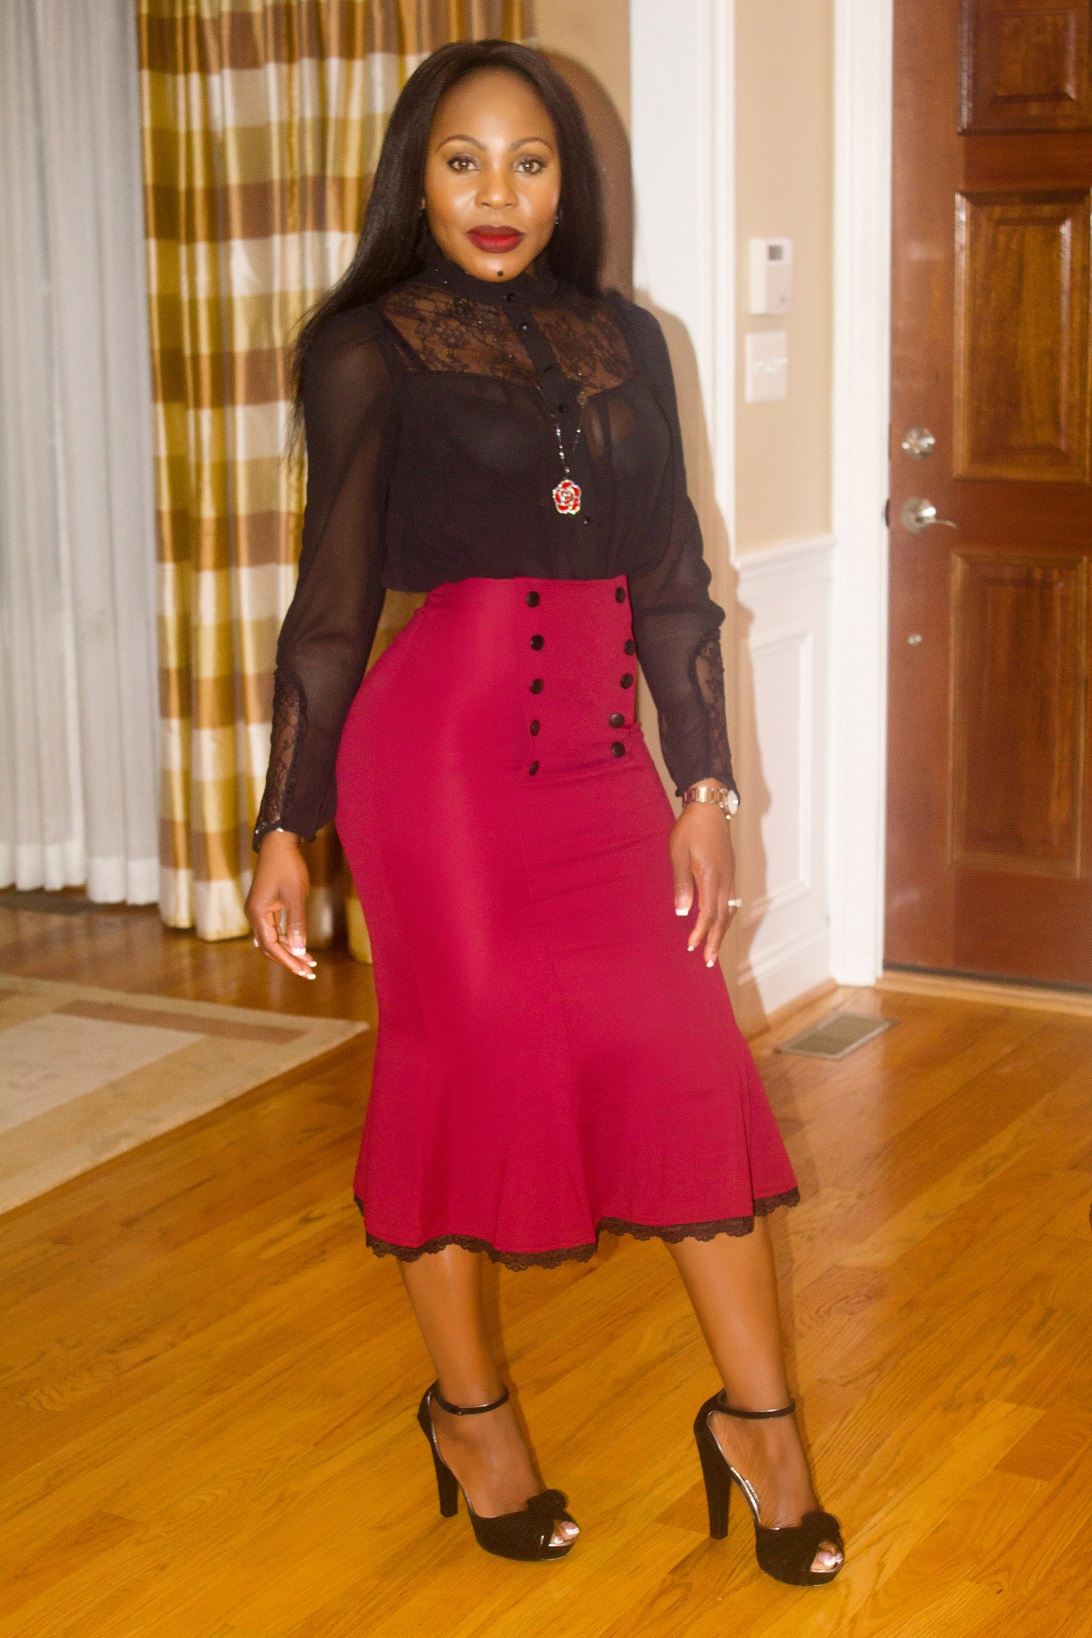 Thelma-ceo-Red-Fishtail-midi-skirt-black-sheer-top-outfit